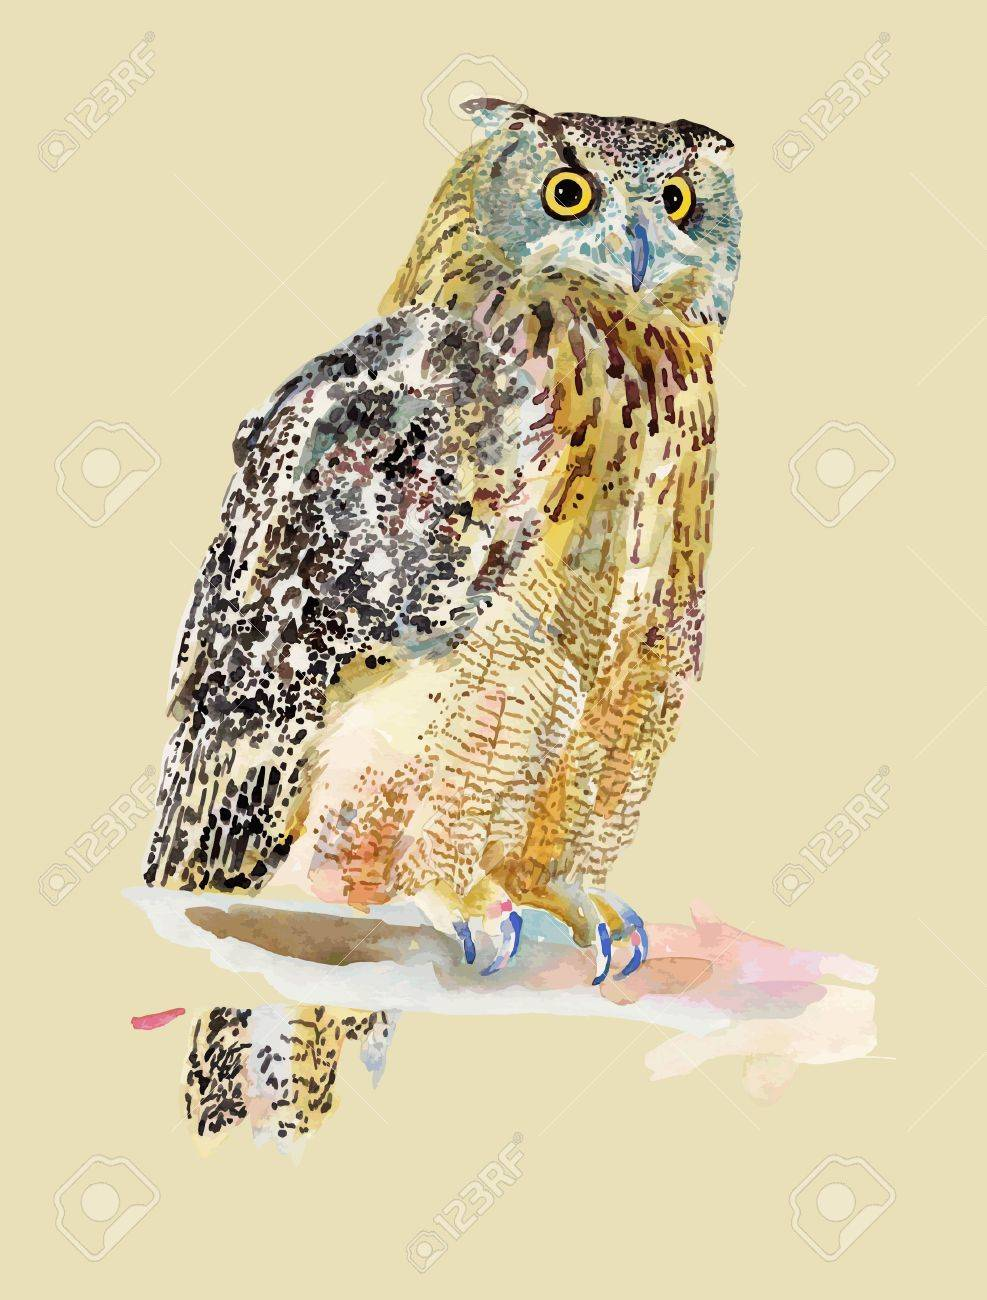 watercolor painting of bird, owl  I am author of this illustration Stock Vector - 13756716